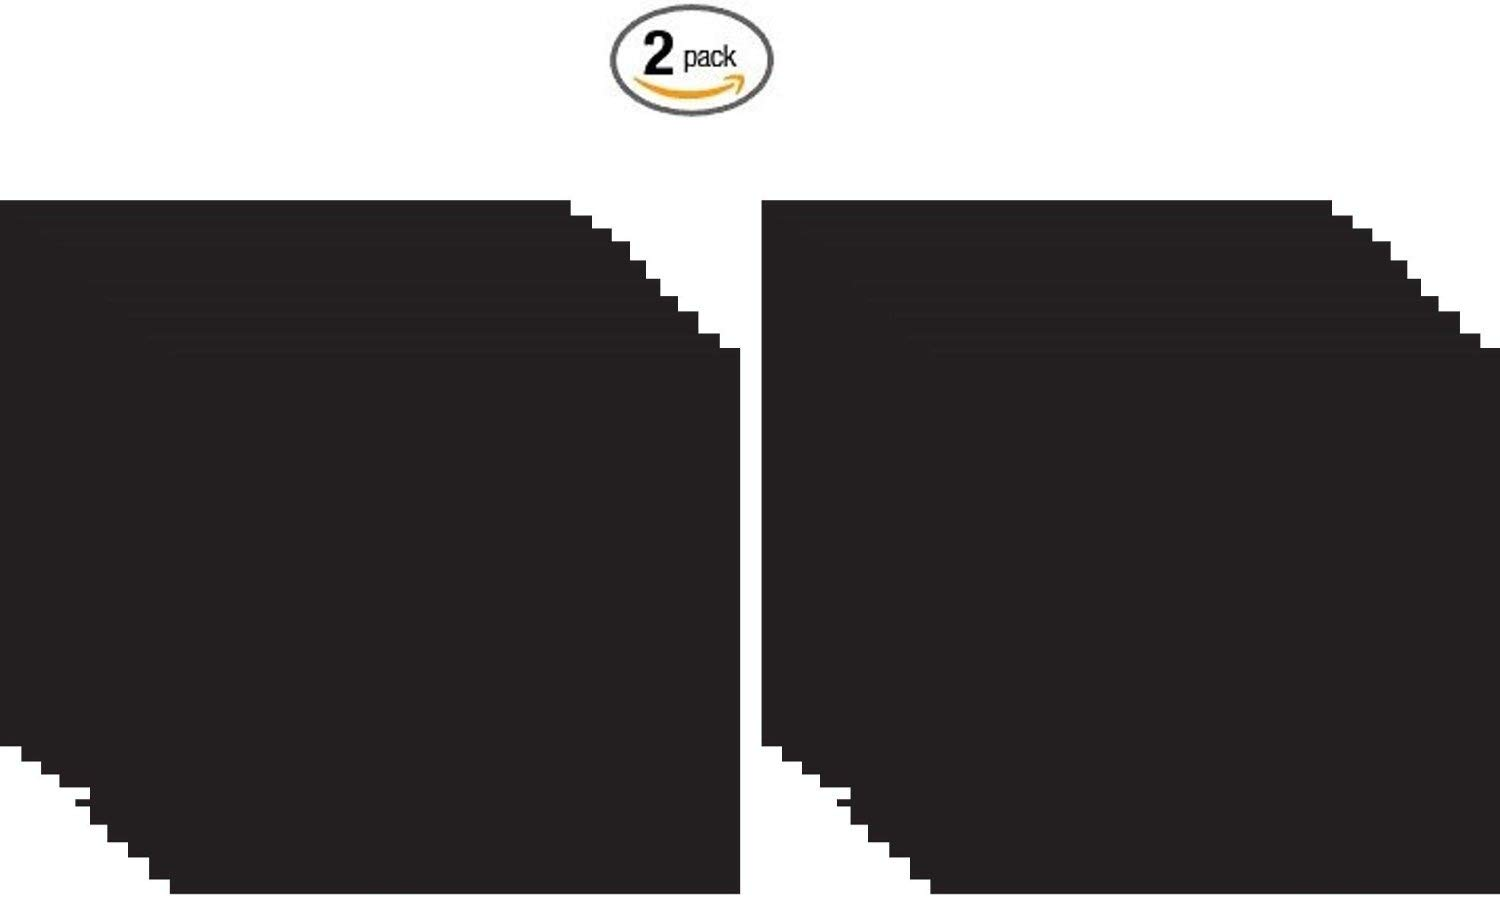 Foam Sheet 9X12 2mm-Black 10 per pack (2 pack) Notions - In Network 1144-12